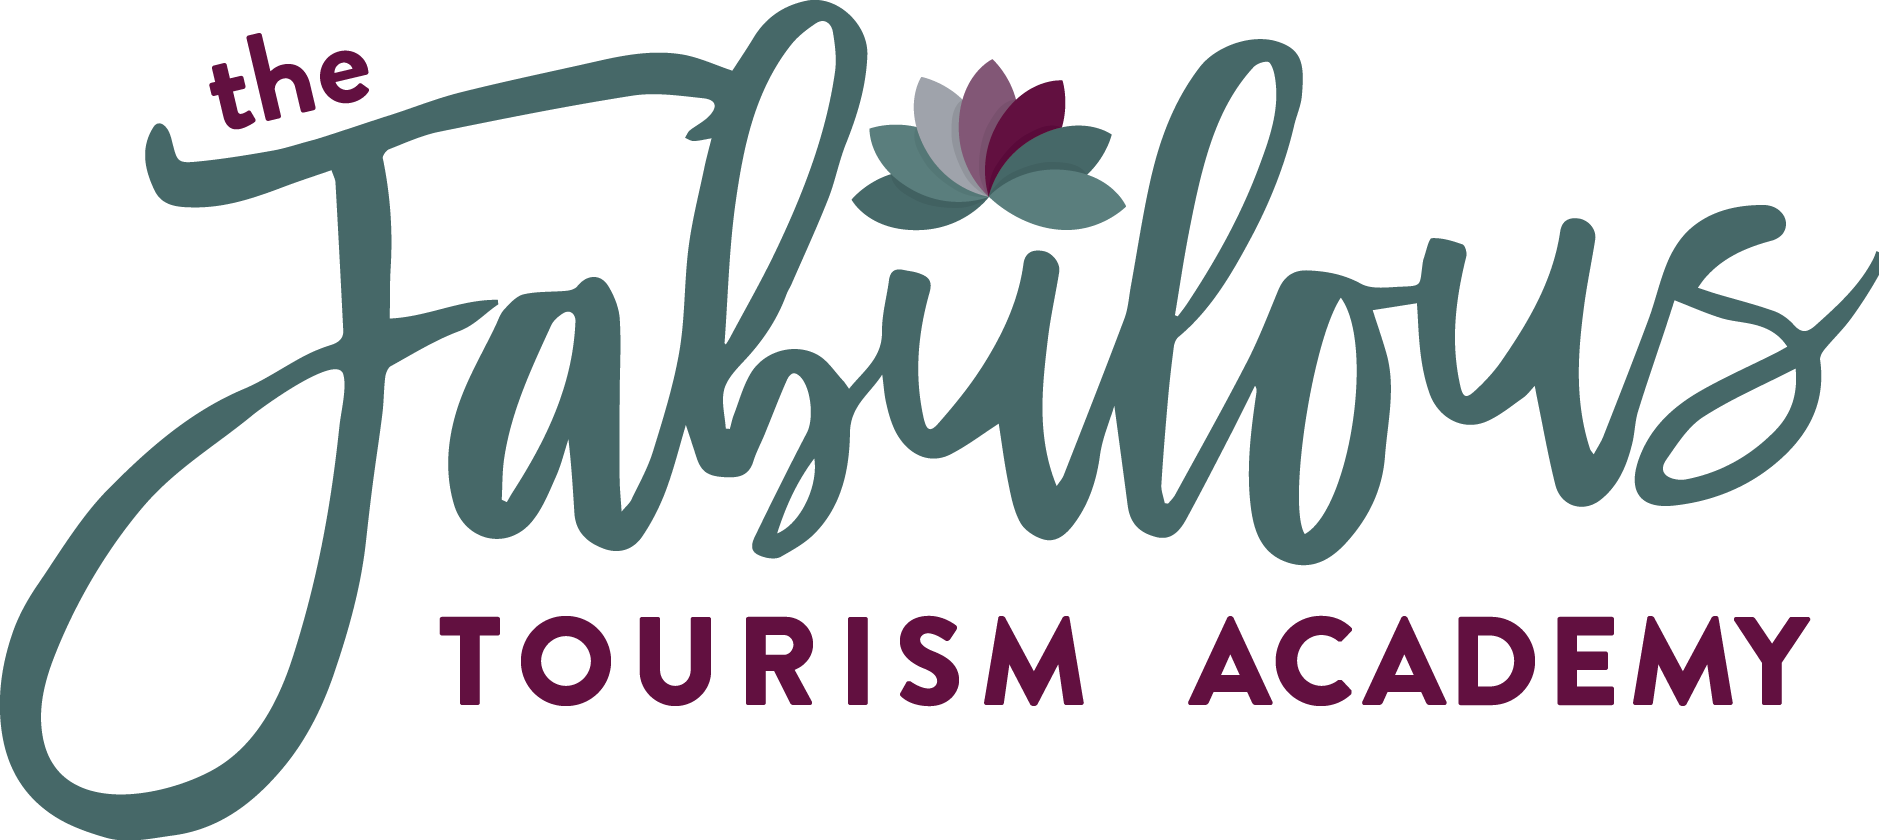 The Fabulous Tourism Academy